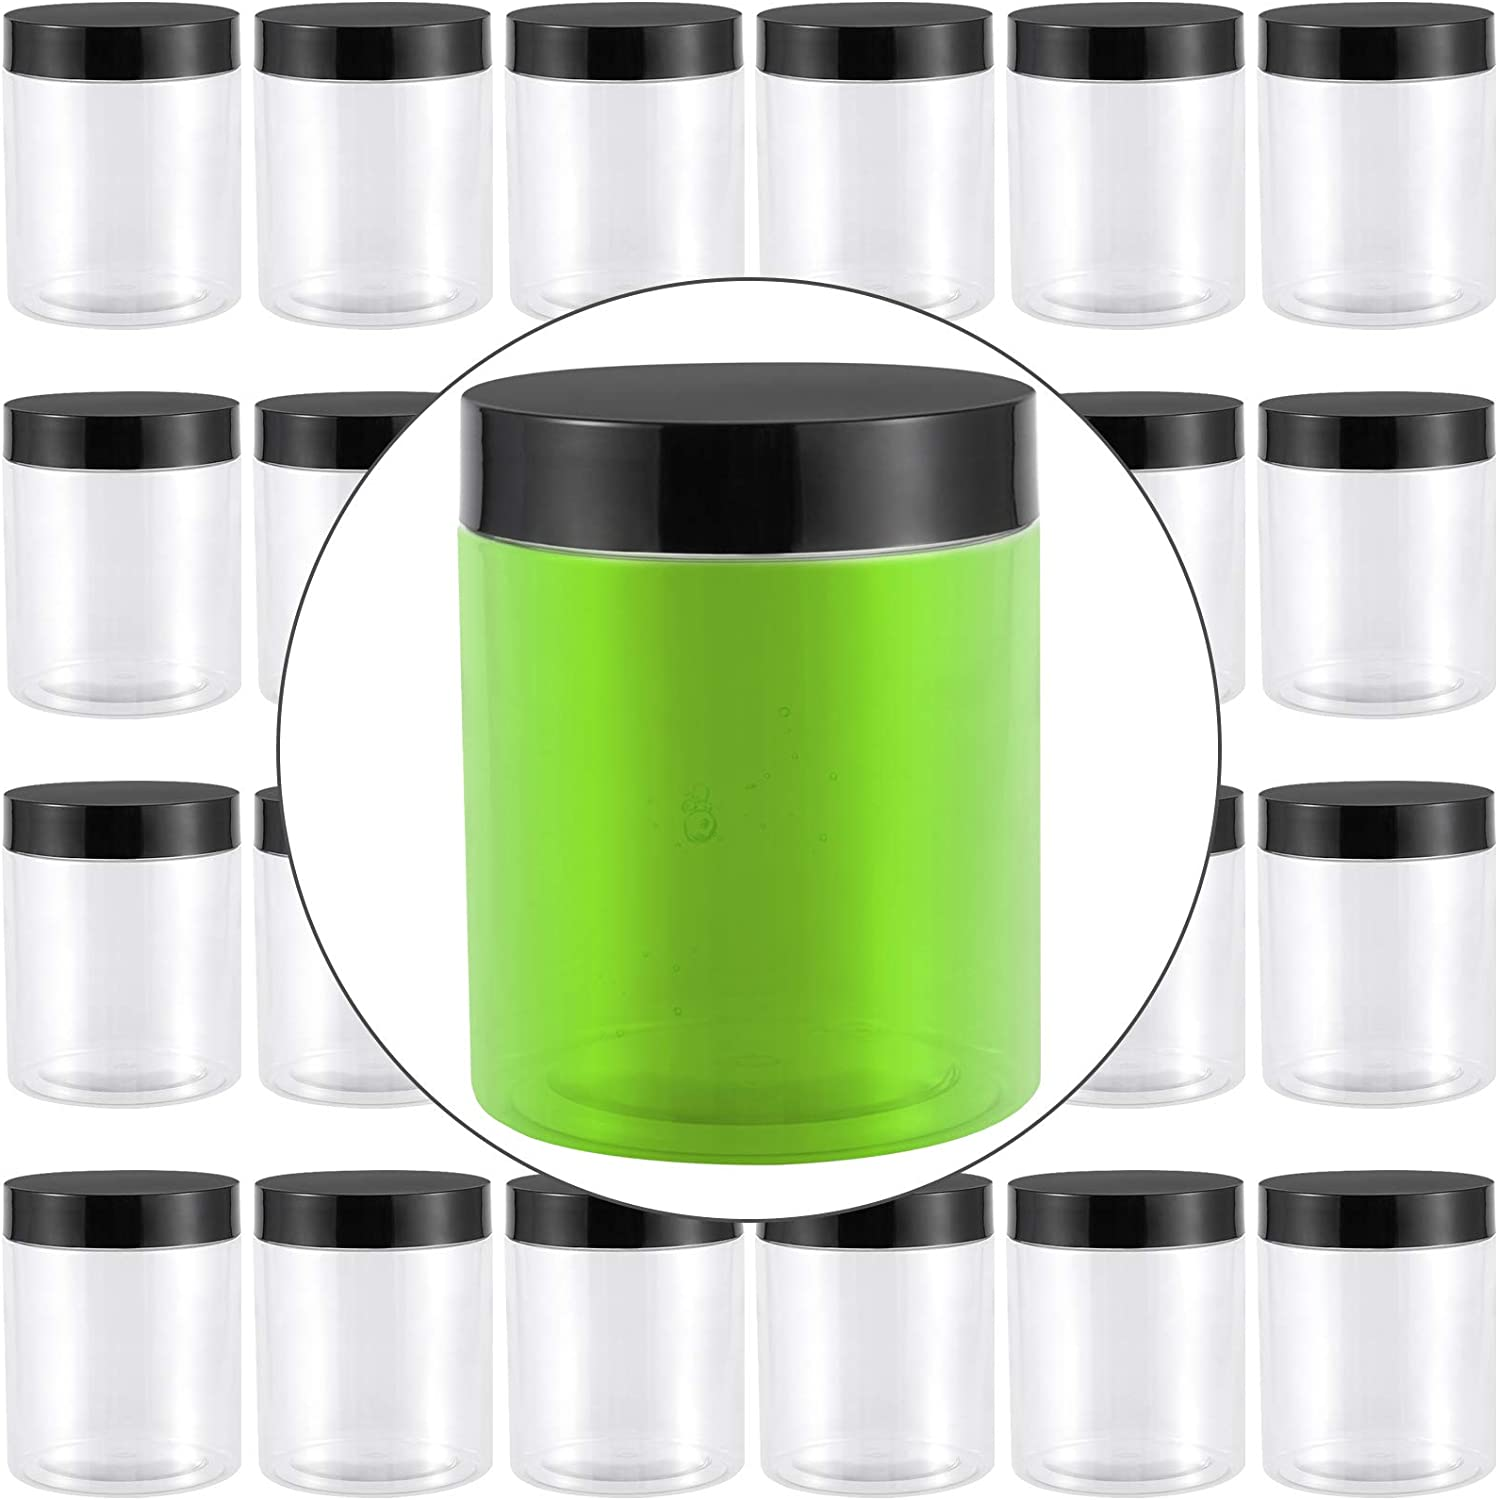 FAATCOI 24 Pack 8 OZ Plastic Jars Storage Containers, Clear Plastic Storage Jars with Black Lids Wide Mouth Bottles for Cosmetic Cream Light Clay DIY Craft